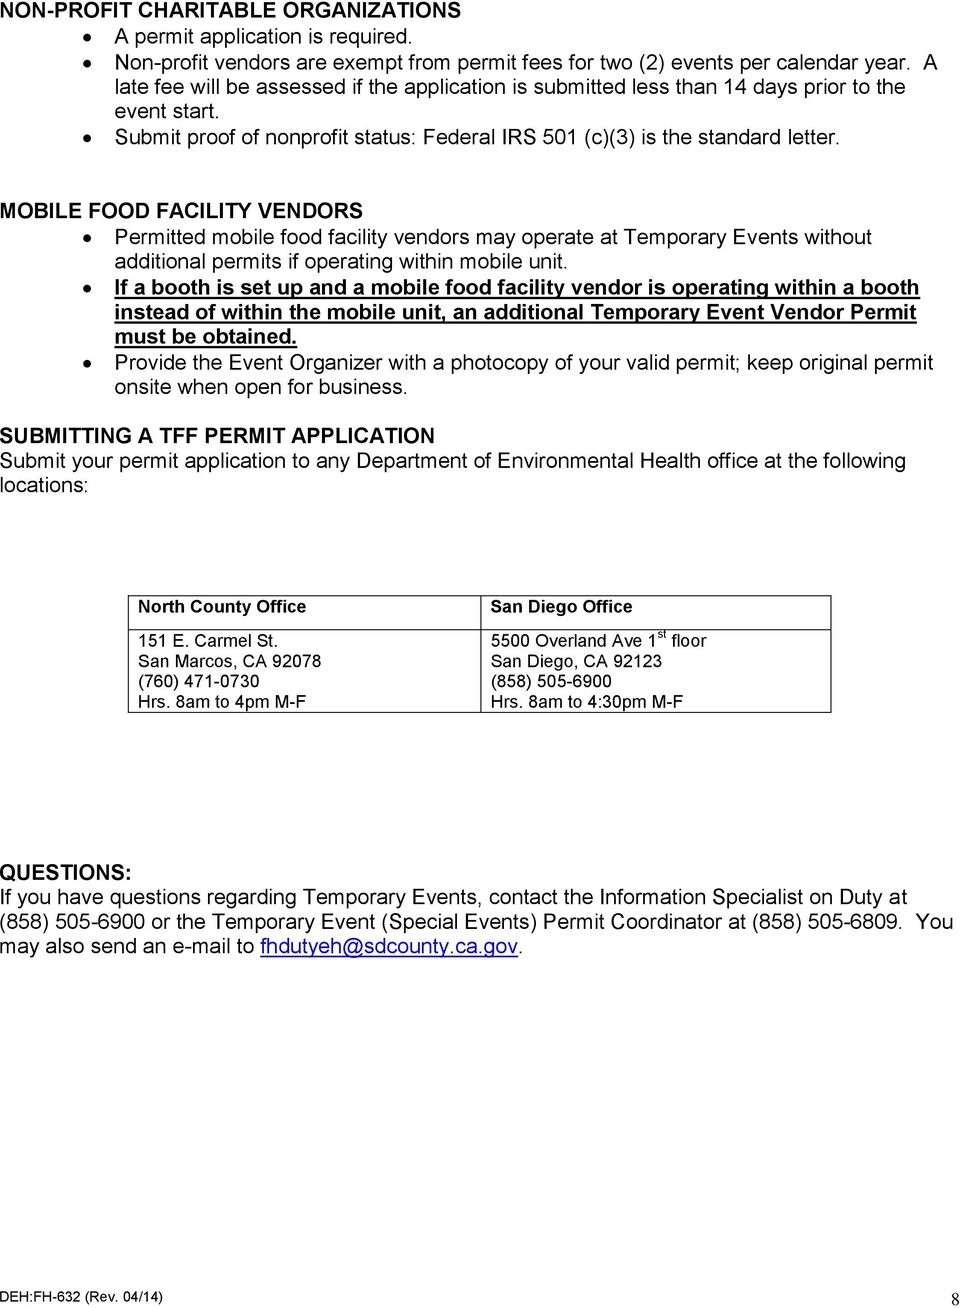 MOBILE FOOD FACILITY VENDORS Permitted mobile food facility vendors may operate at Temporary Events without additional permits if operating within mobile unit.